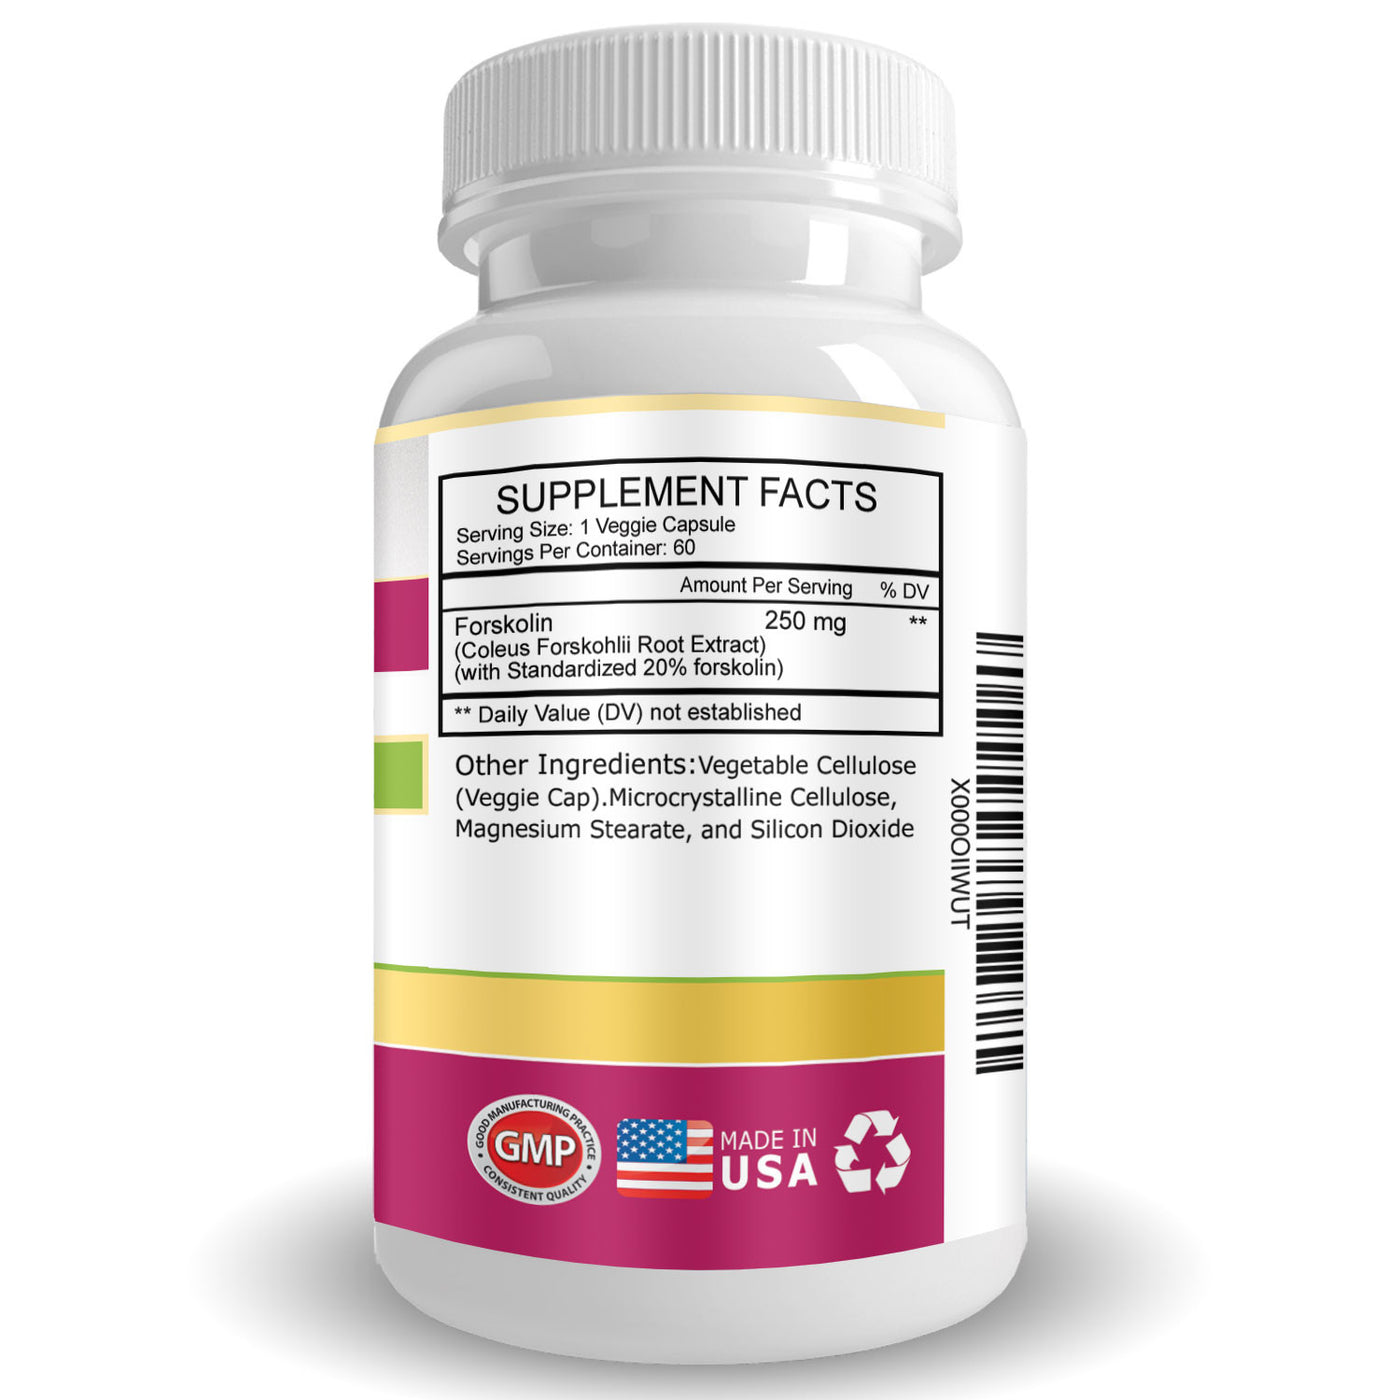 Forskolin Extract - Appetite Suppressant, Weight Loss Supplement